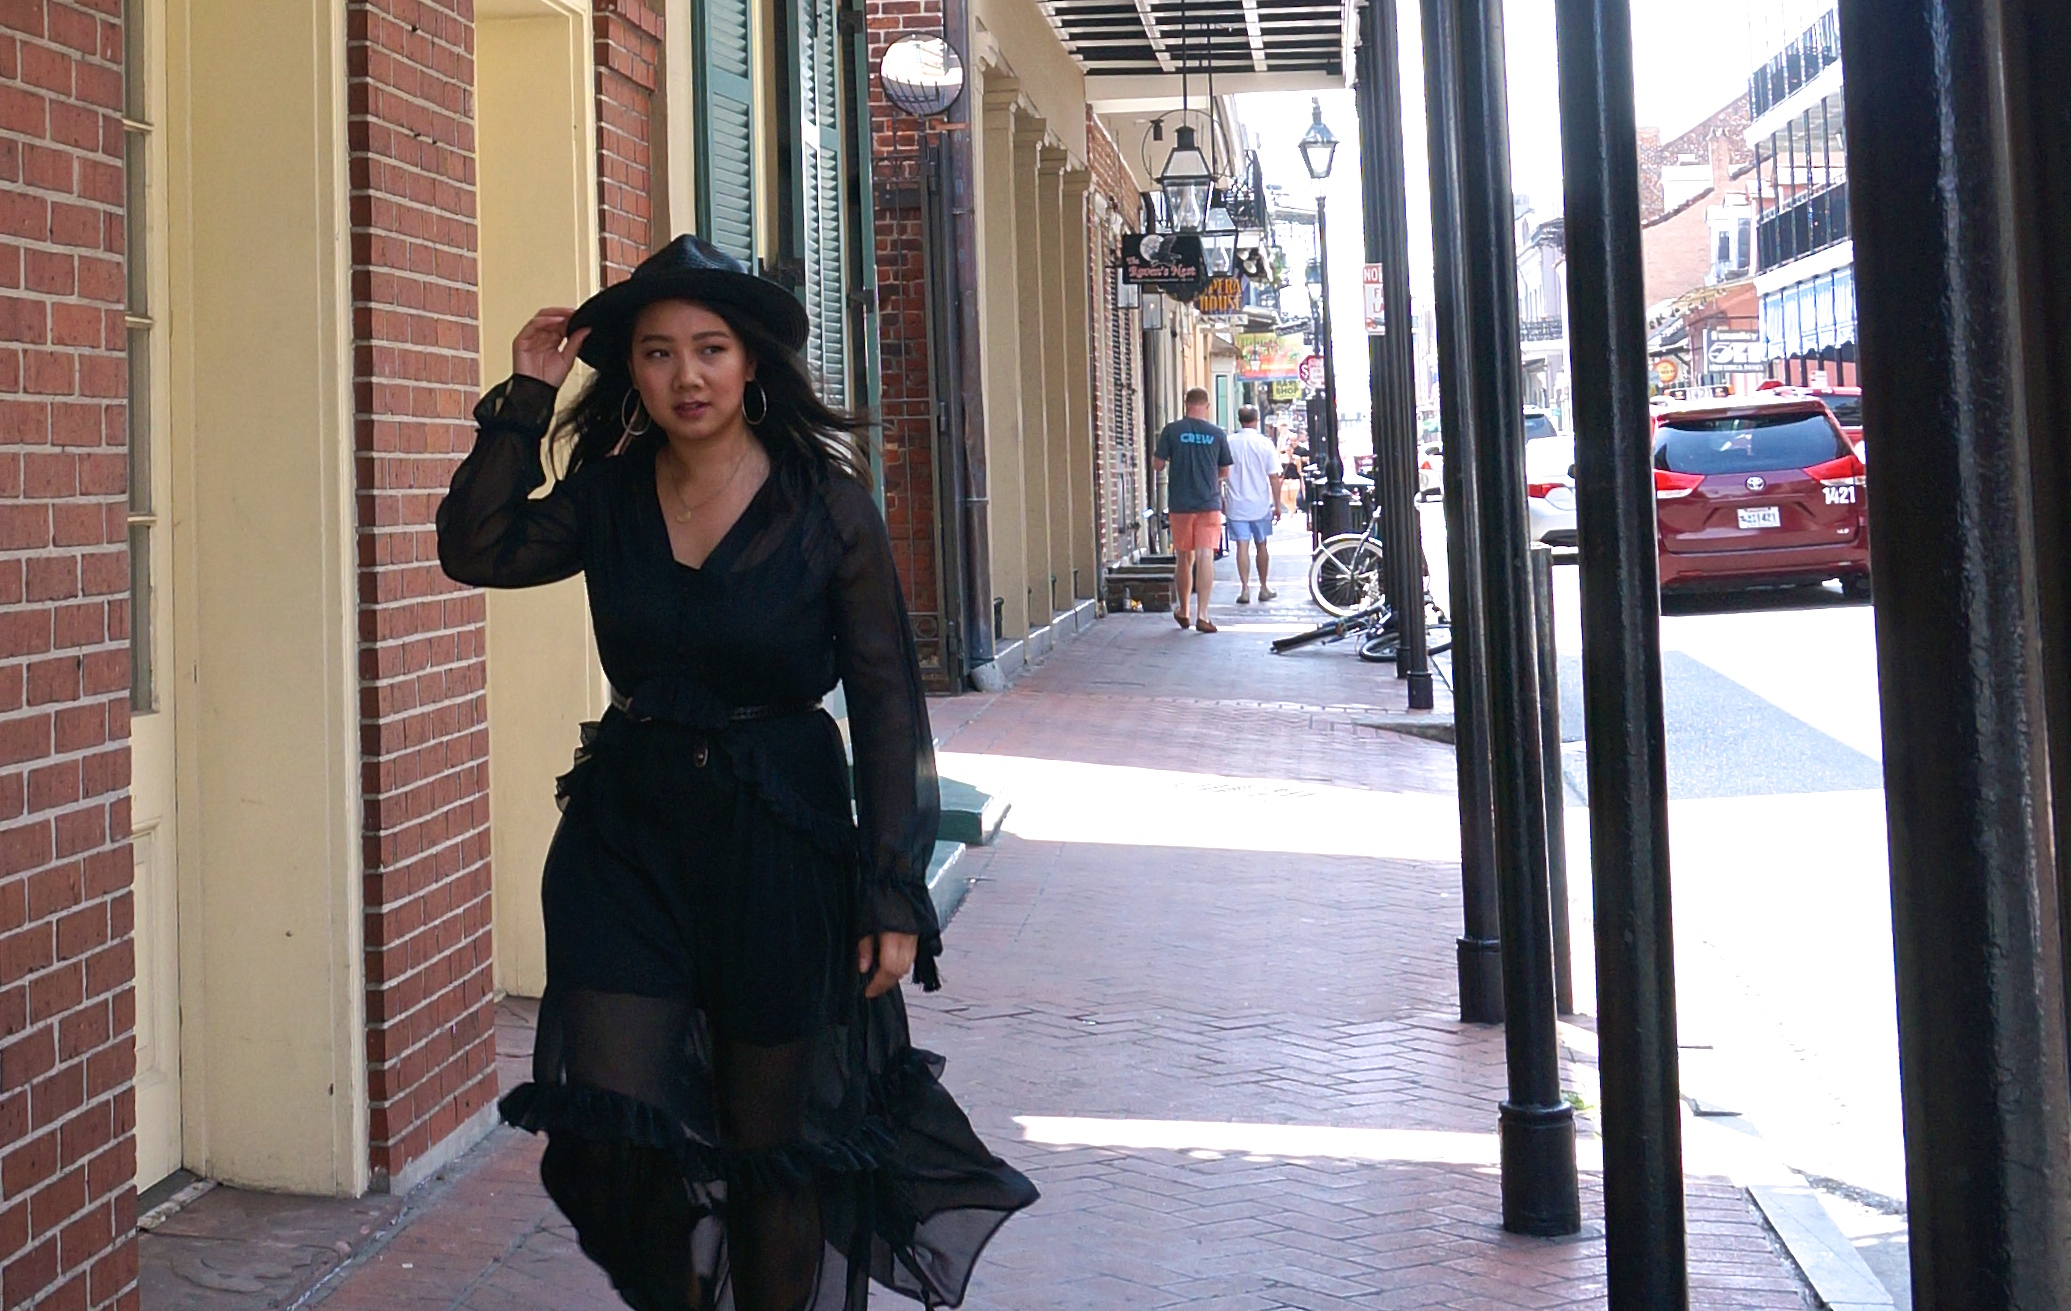 New Orleans French Quarter walking tour American Horror Story Coven Witches walk